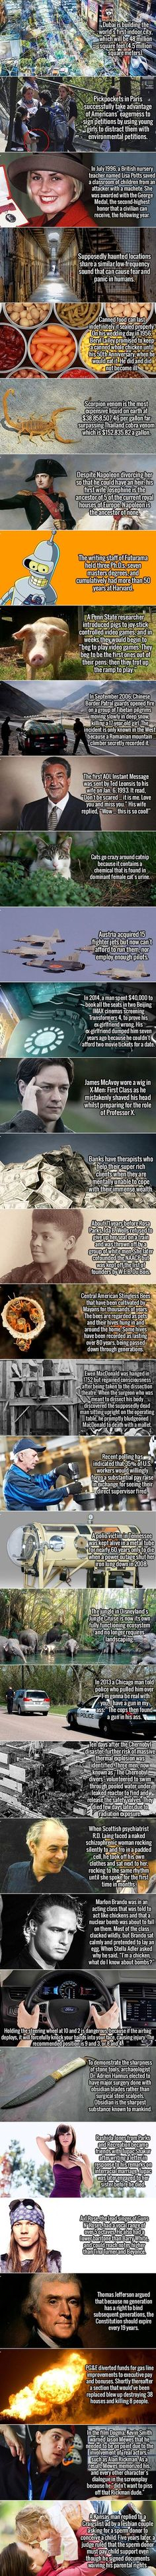 Another week, another round of interesting facts.: